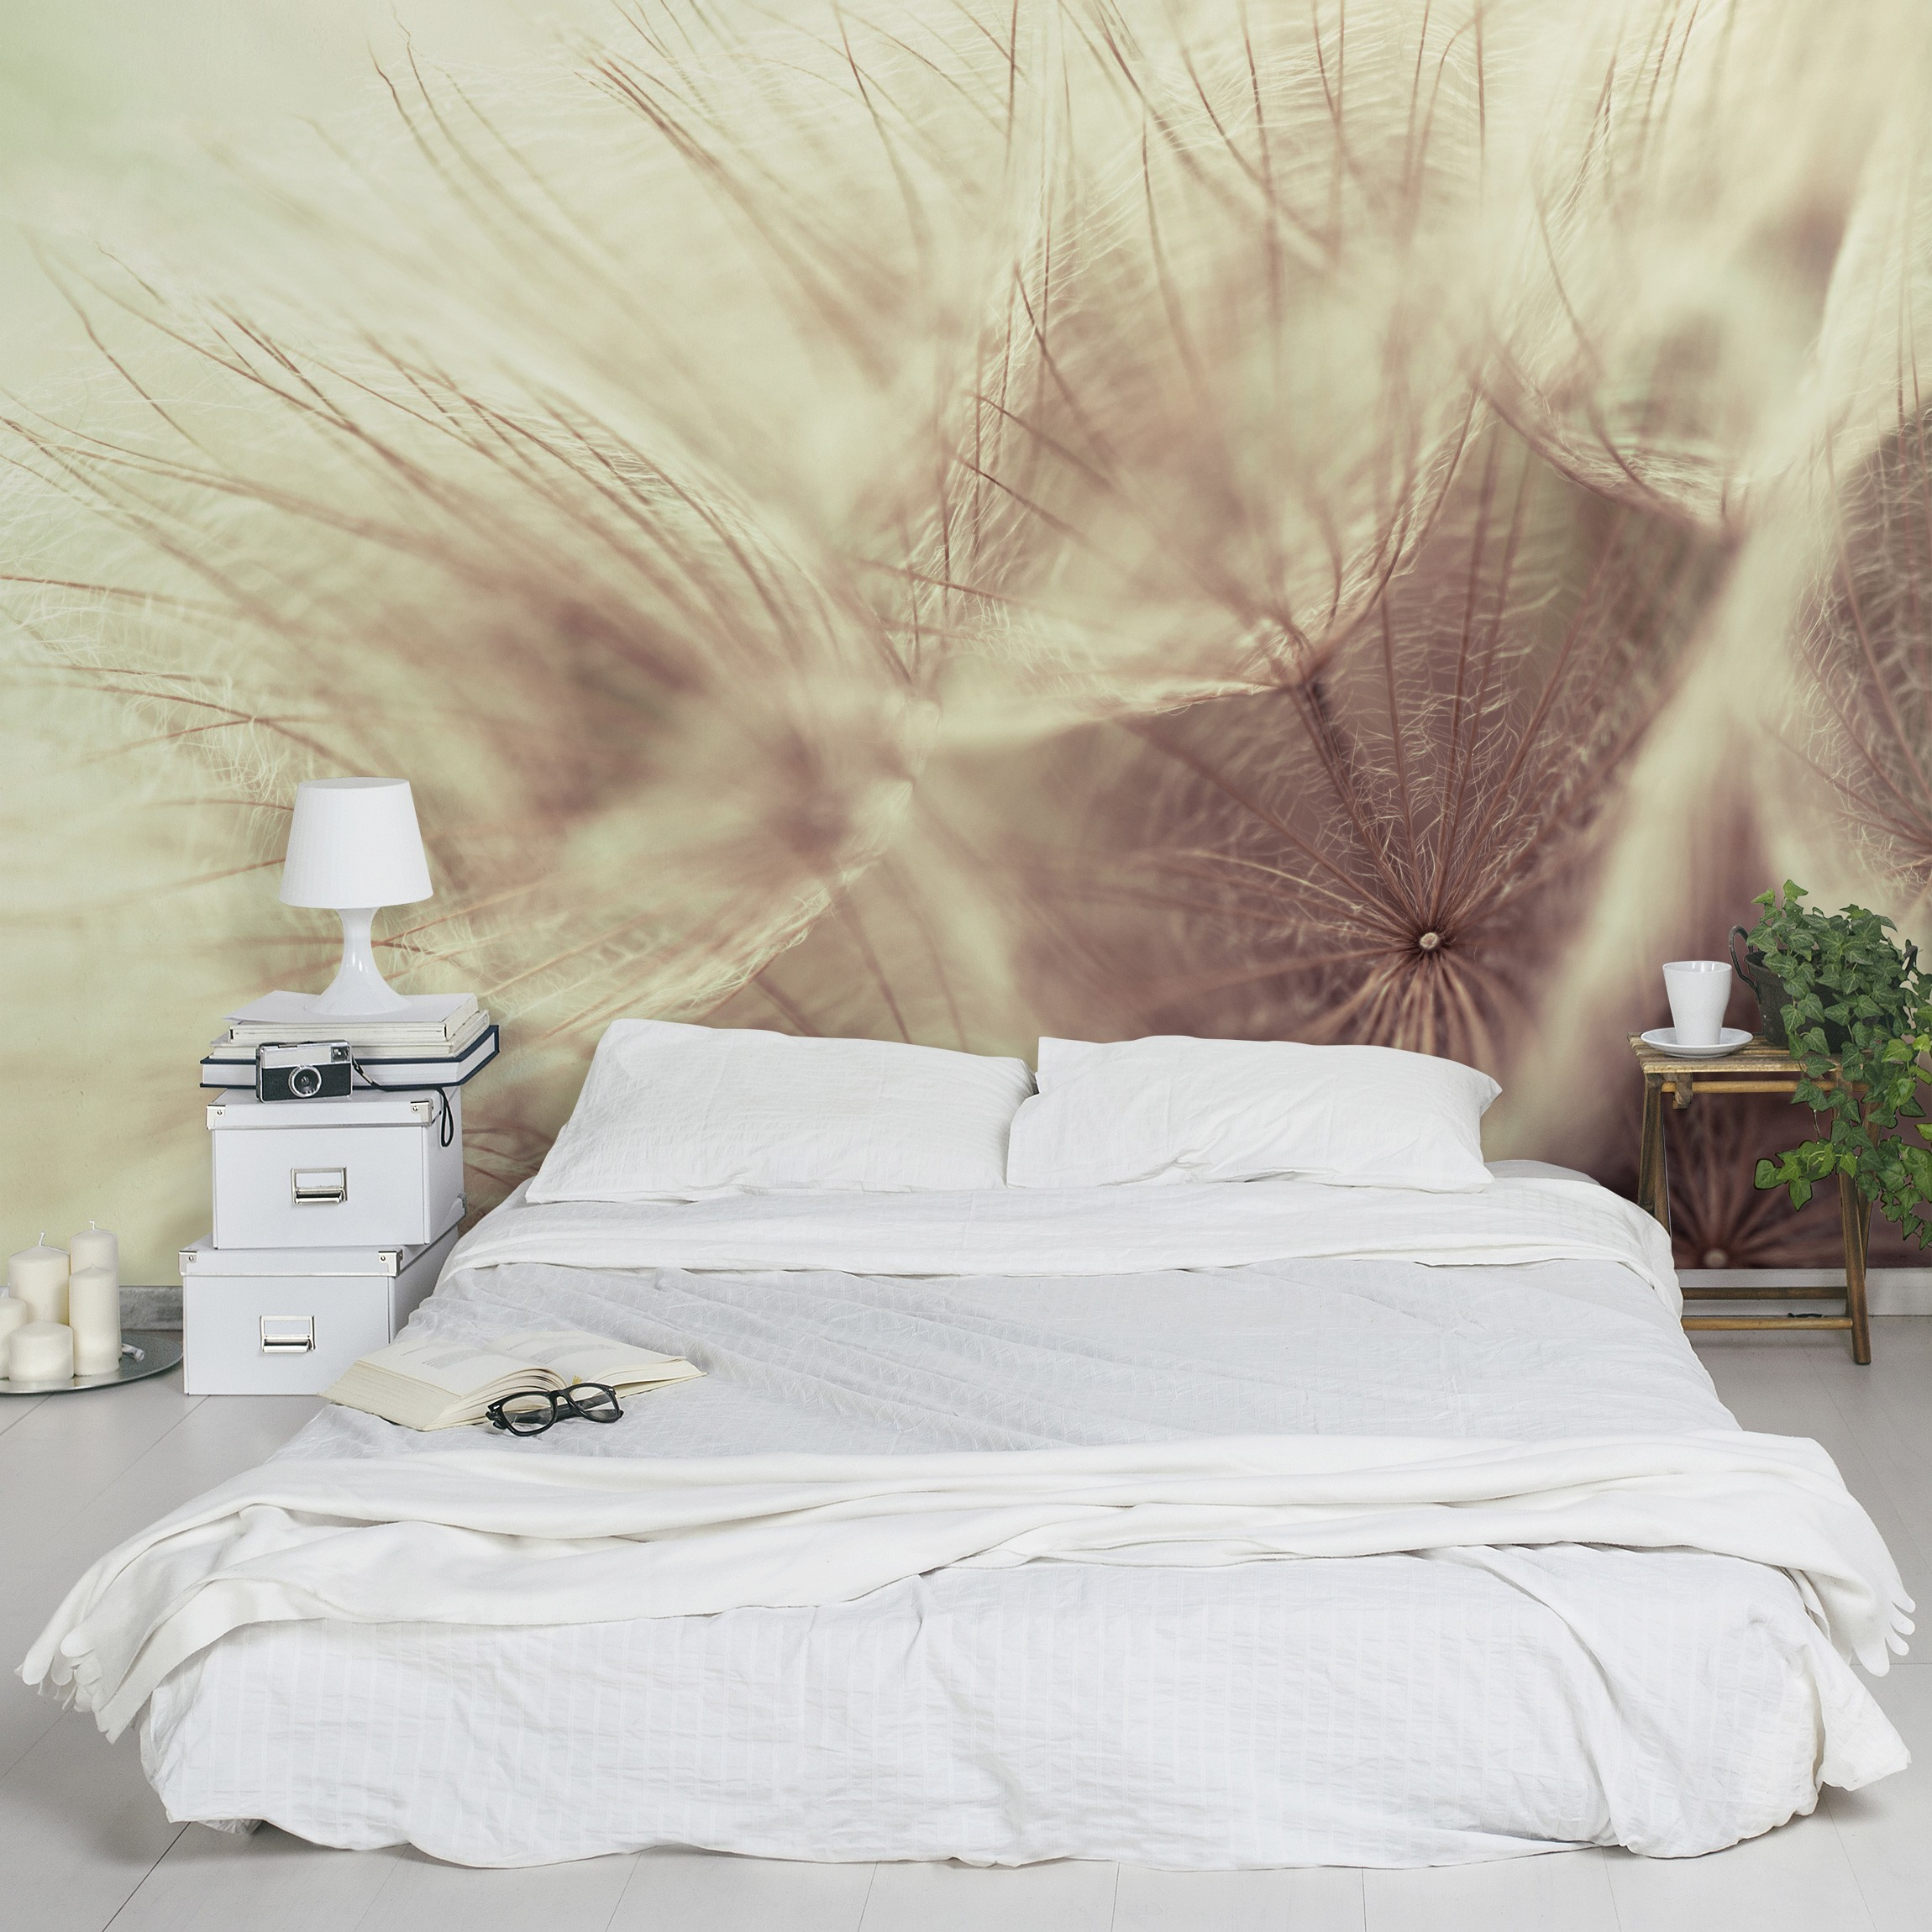 selbstklebende tapete detailreiche pusteblumen makroaufnahme mit vintage blur effekt. Black Bedroom Furniture Sets. Home Design Ideas